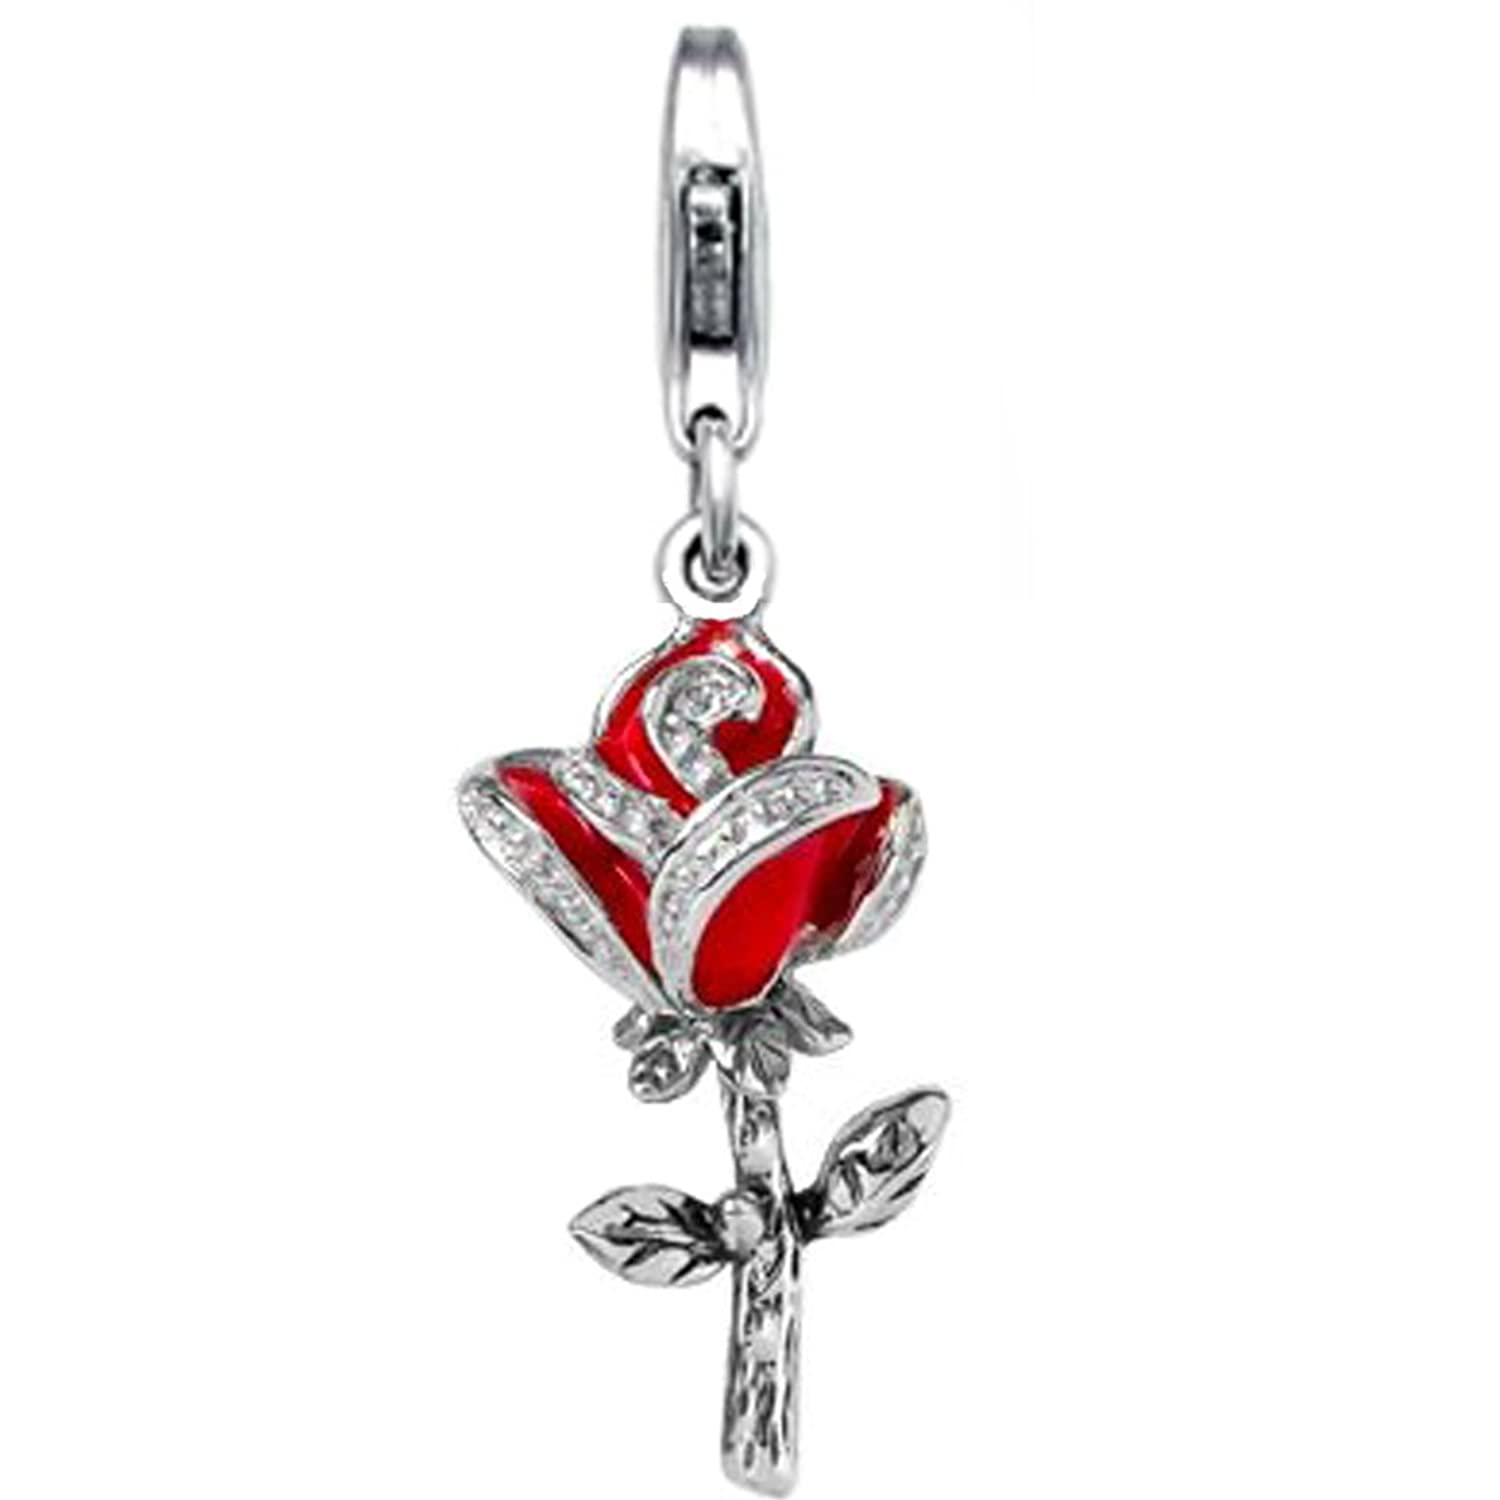 Jovana Sterling Silver Links Charm Red Rose with Red Enamel lobster clasp